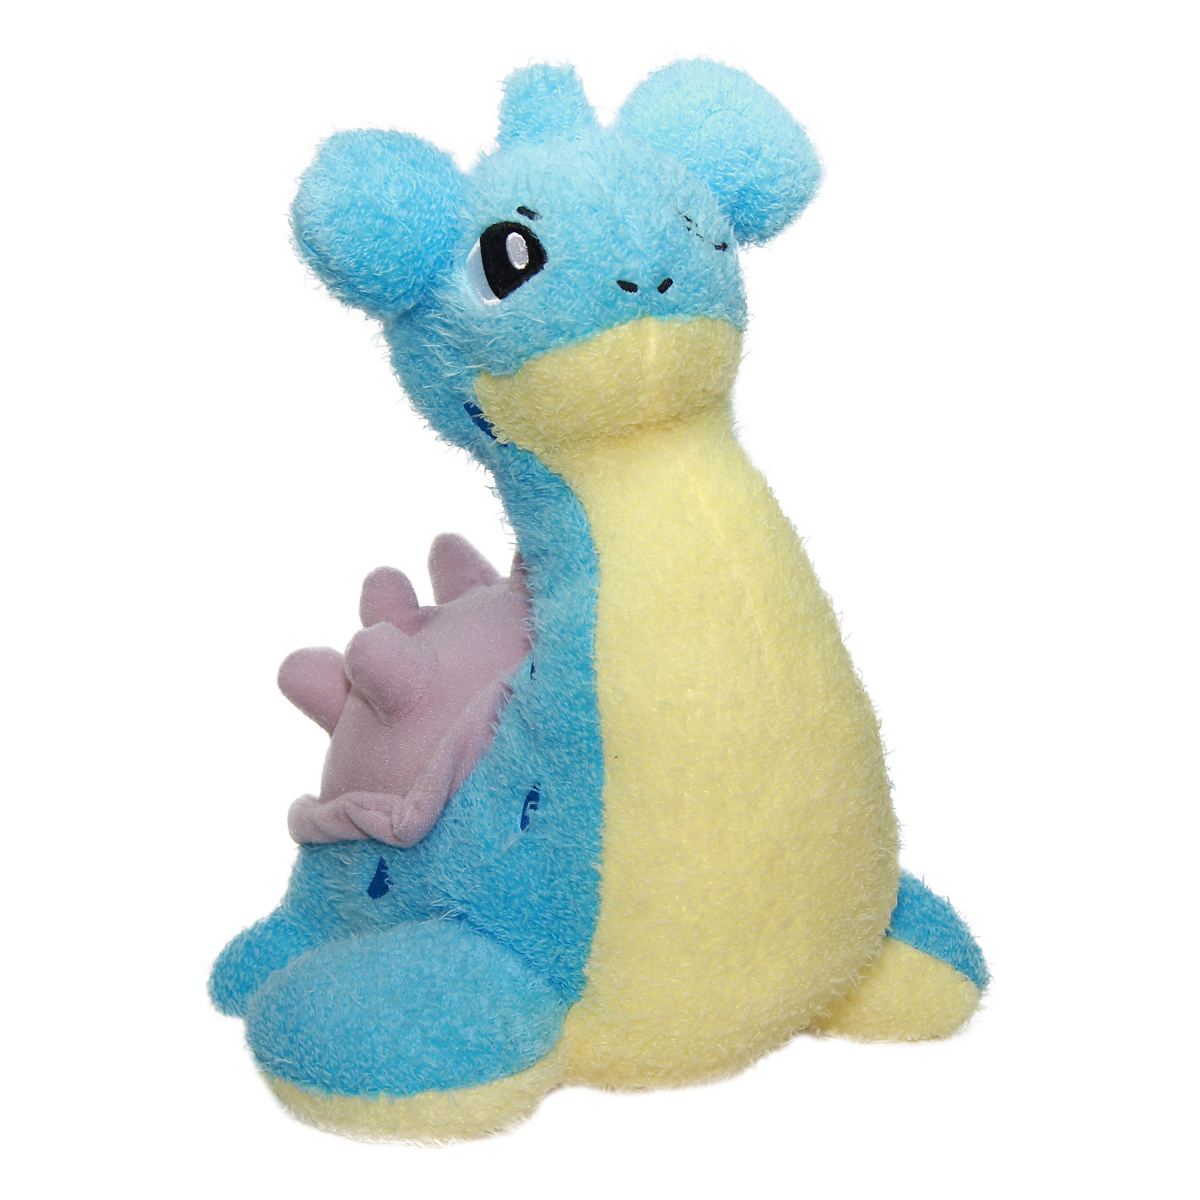 Pokemon Lapras Plush Doll 10 Inches Bandai Spirits Banpresto